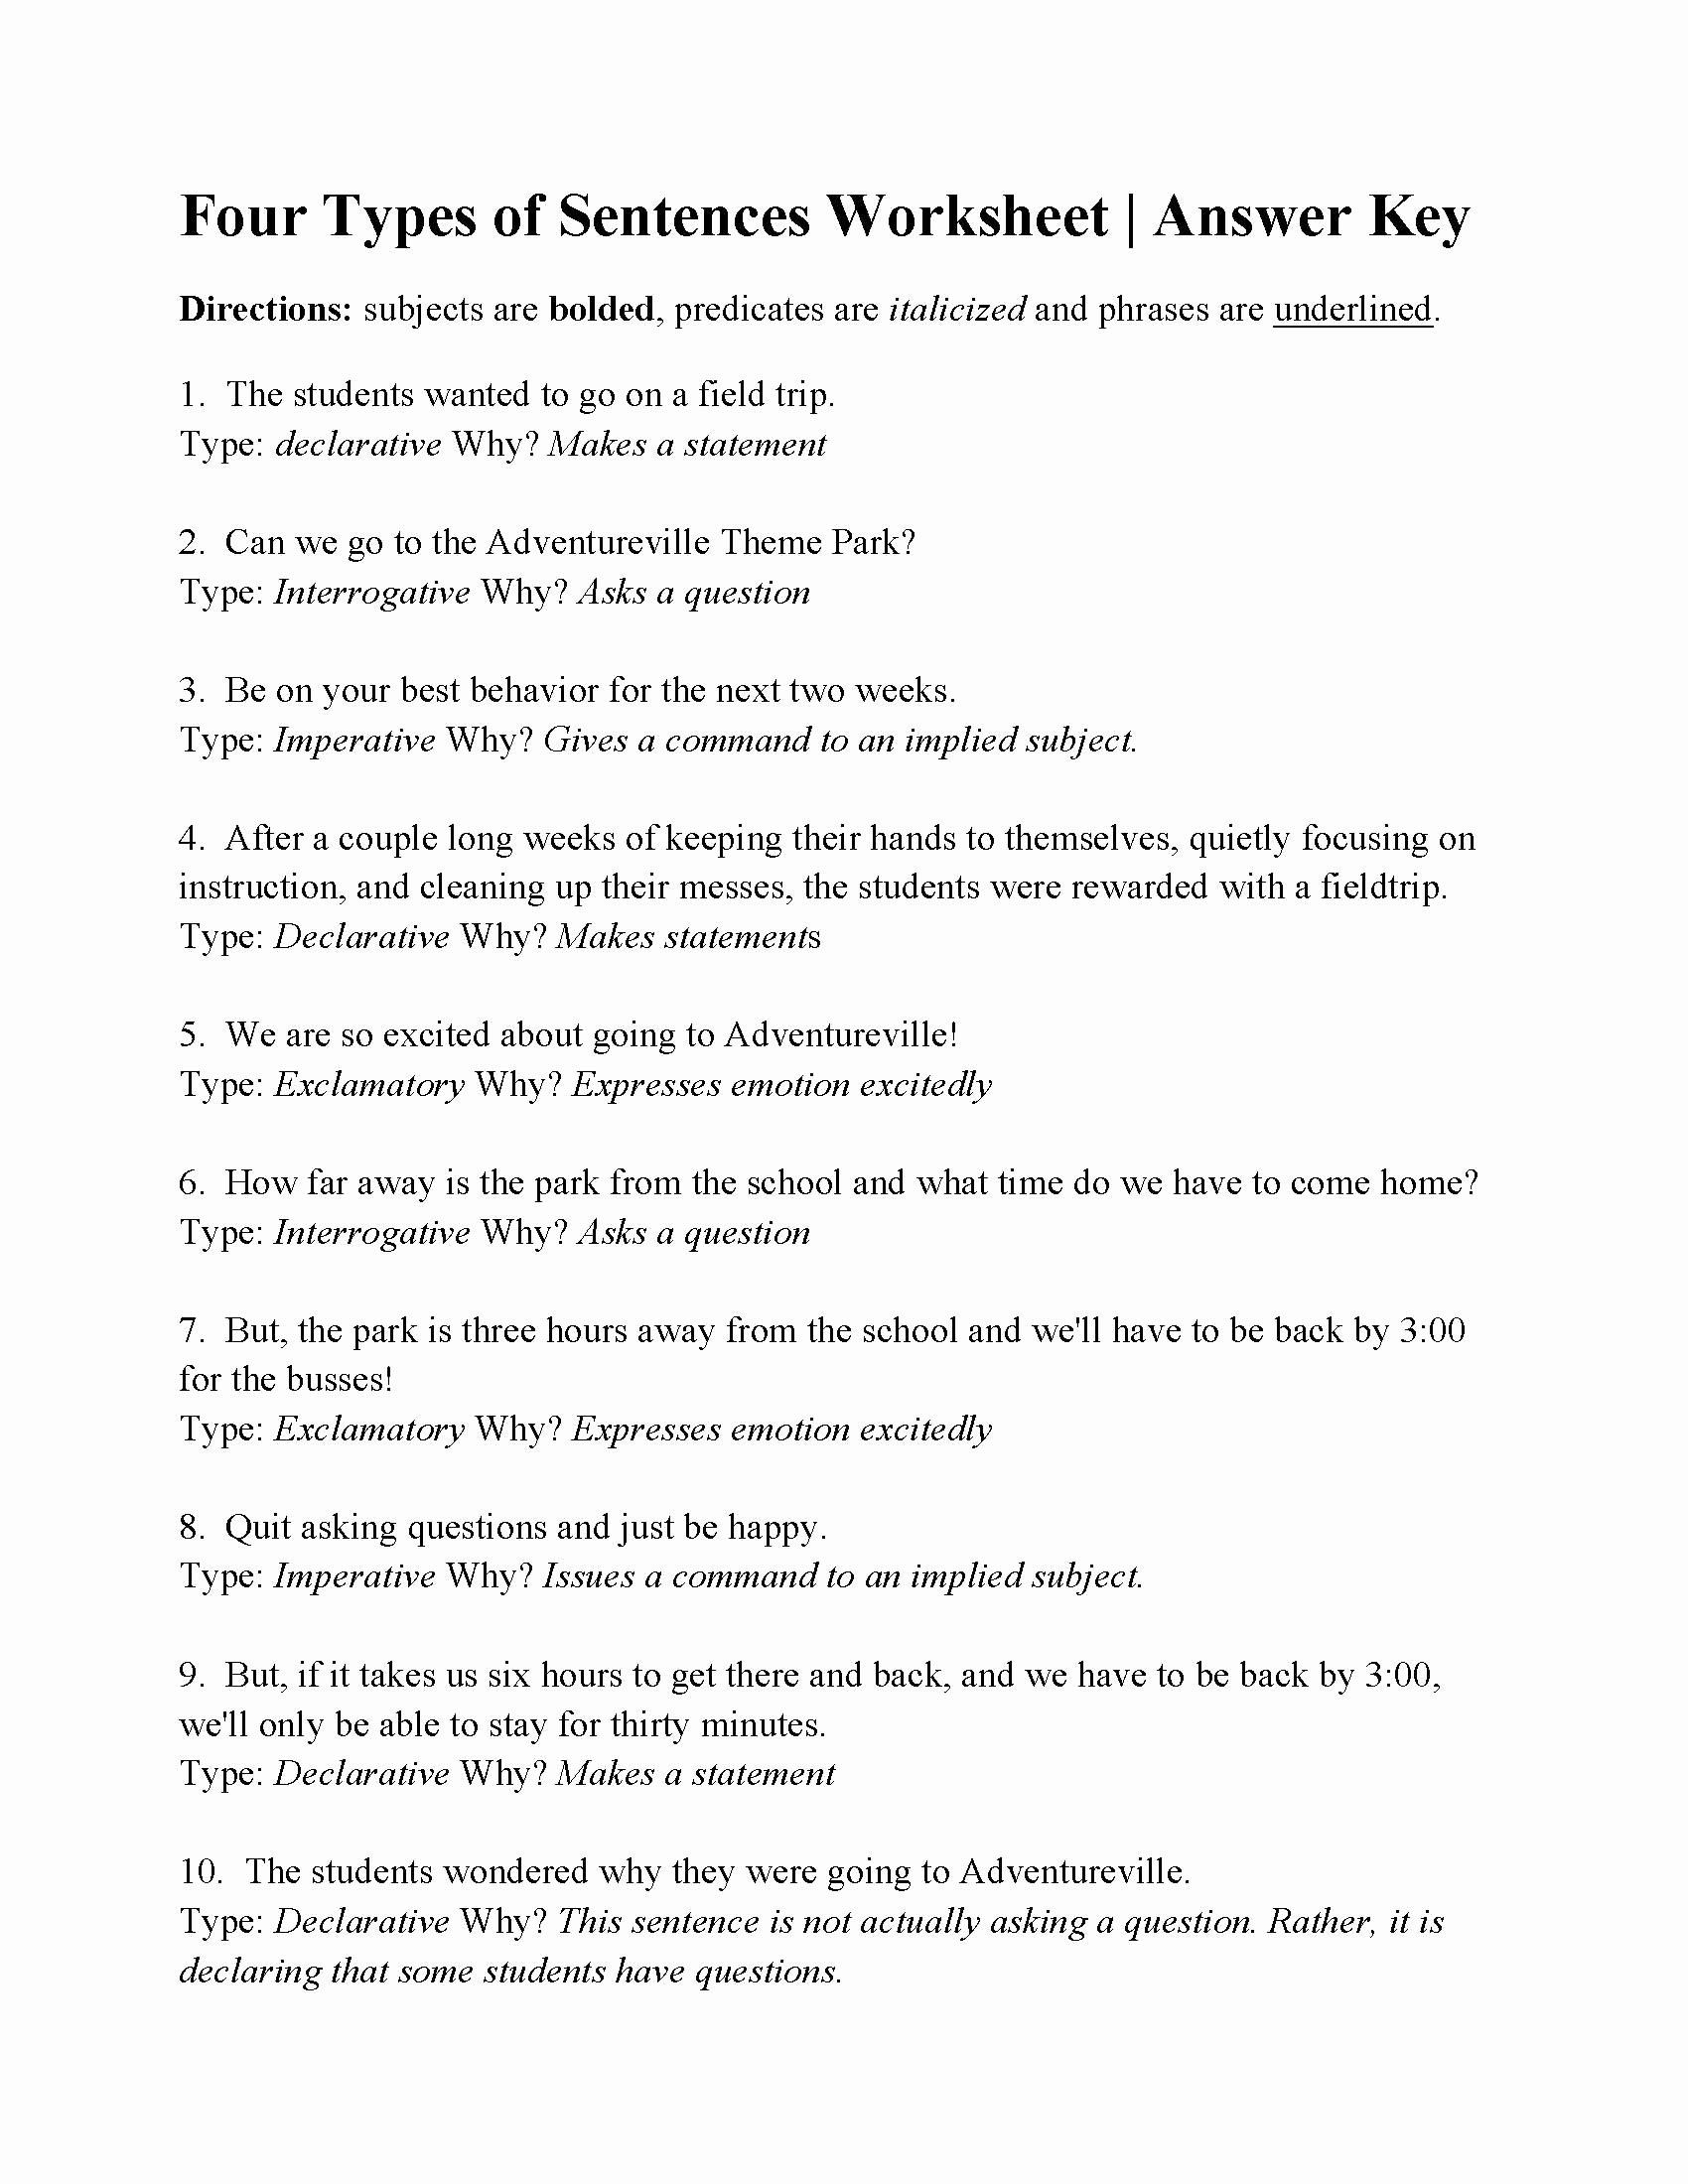 Four Kinds Of Sentences Worksheets New Four Types Of Sentences Worksheet